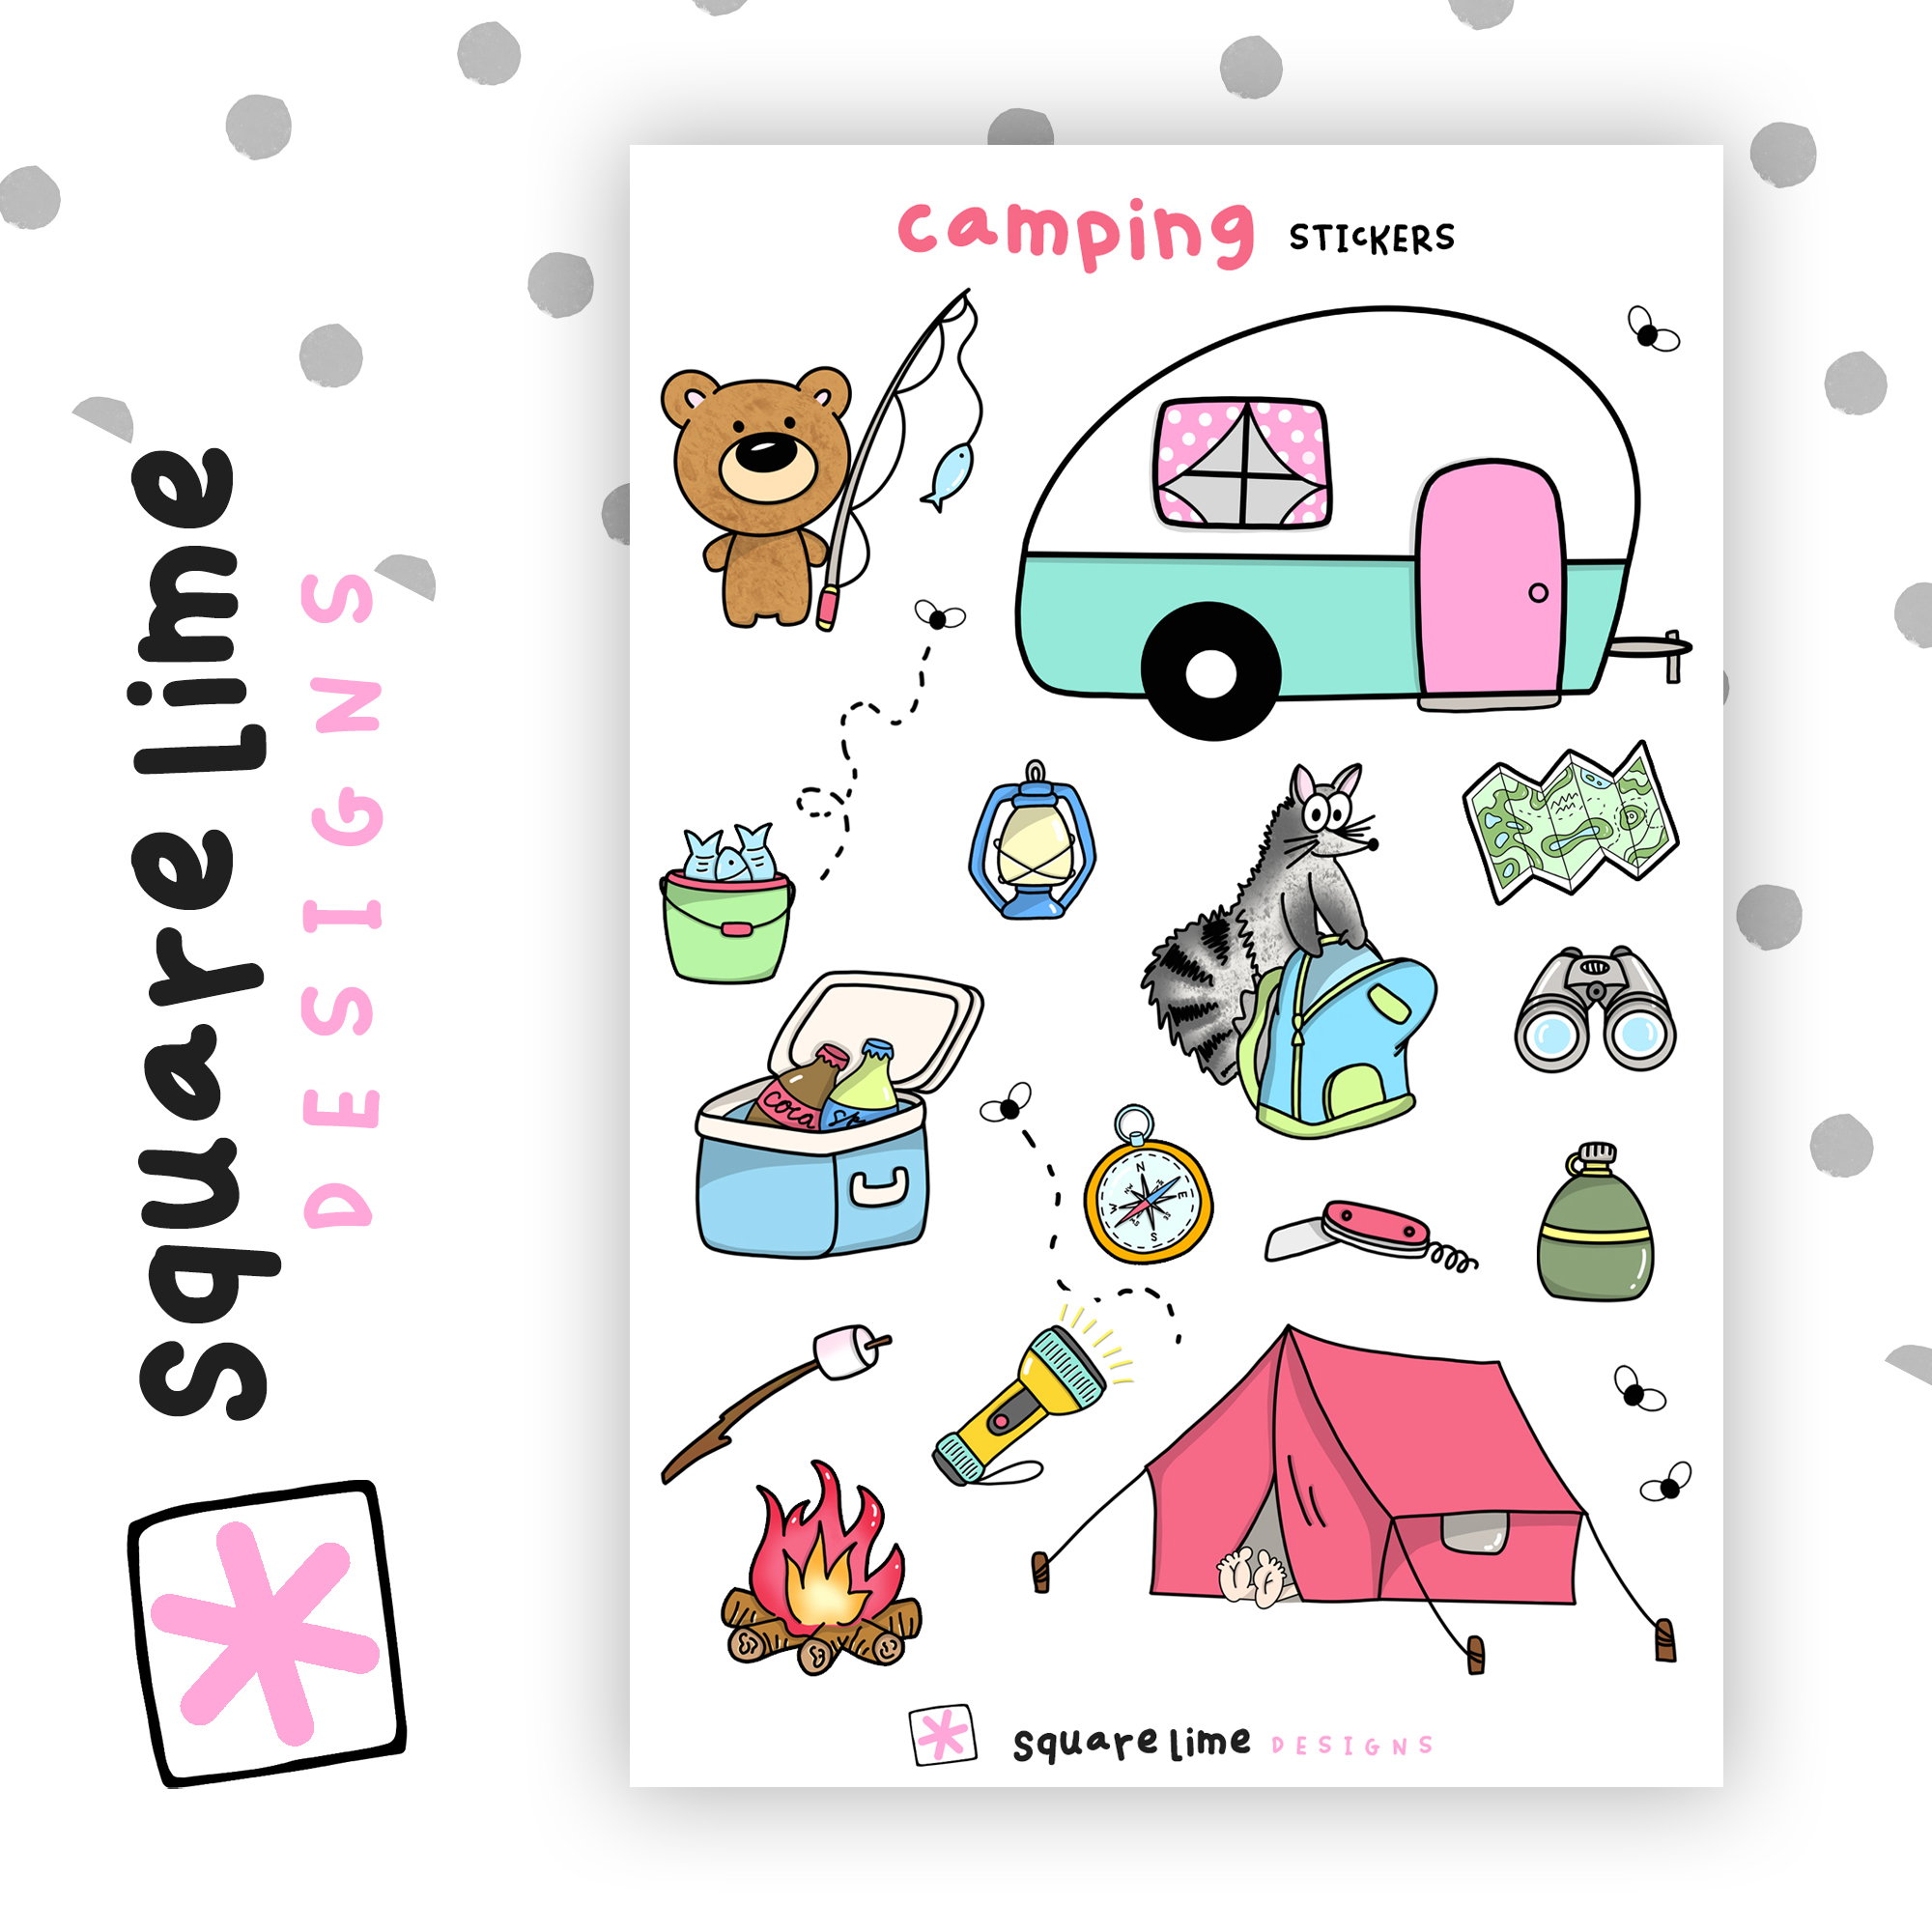 Camping Stickers - July 2019 bullet journal setup - squarelimedesigns.com